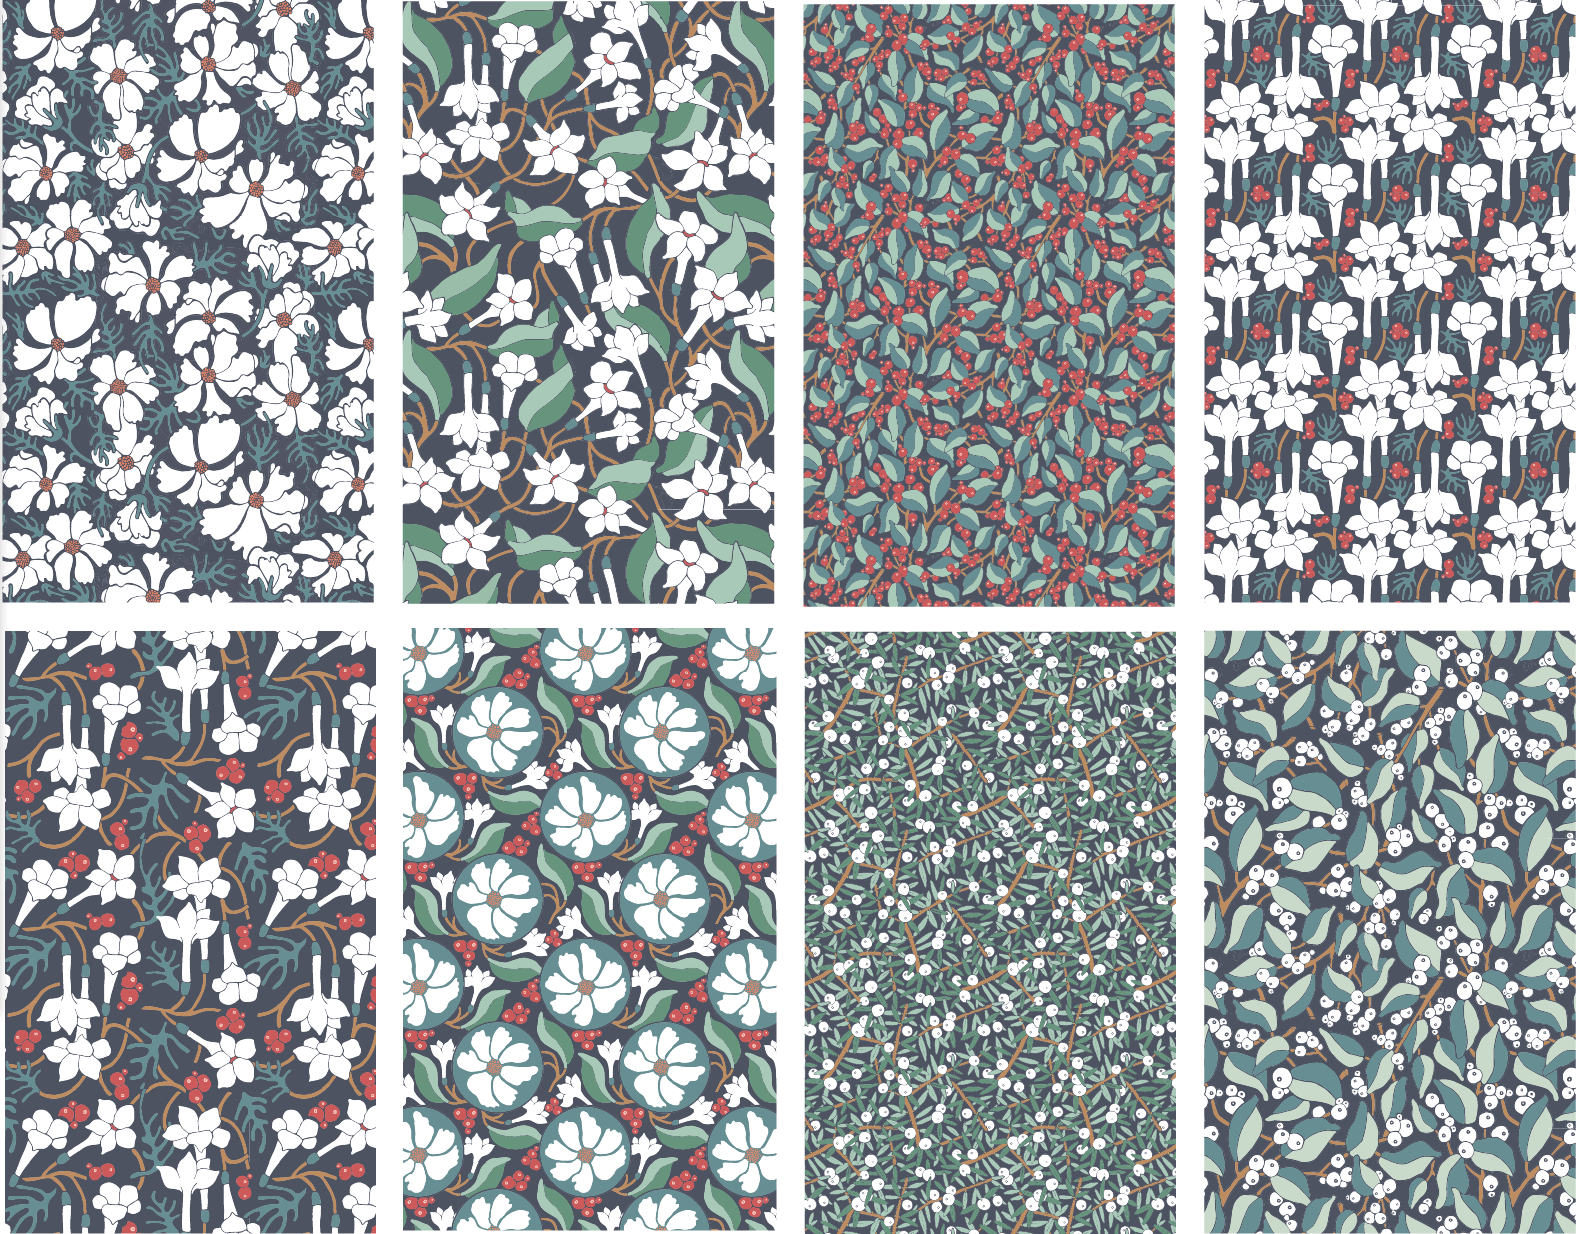 Wintry Woodland: Our Holiday Fabric Collection on Spoonflower, Designed by Jessie Tyree Jenness for Root & Branch Paper Co.